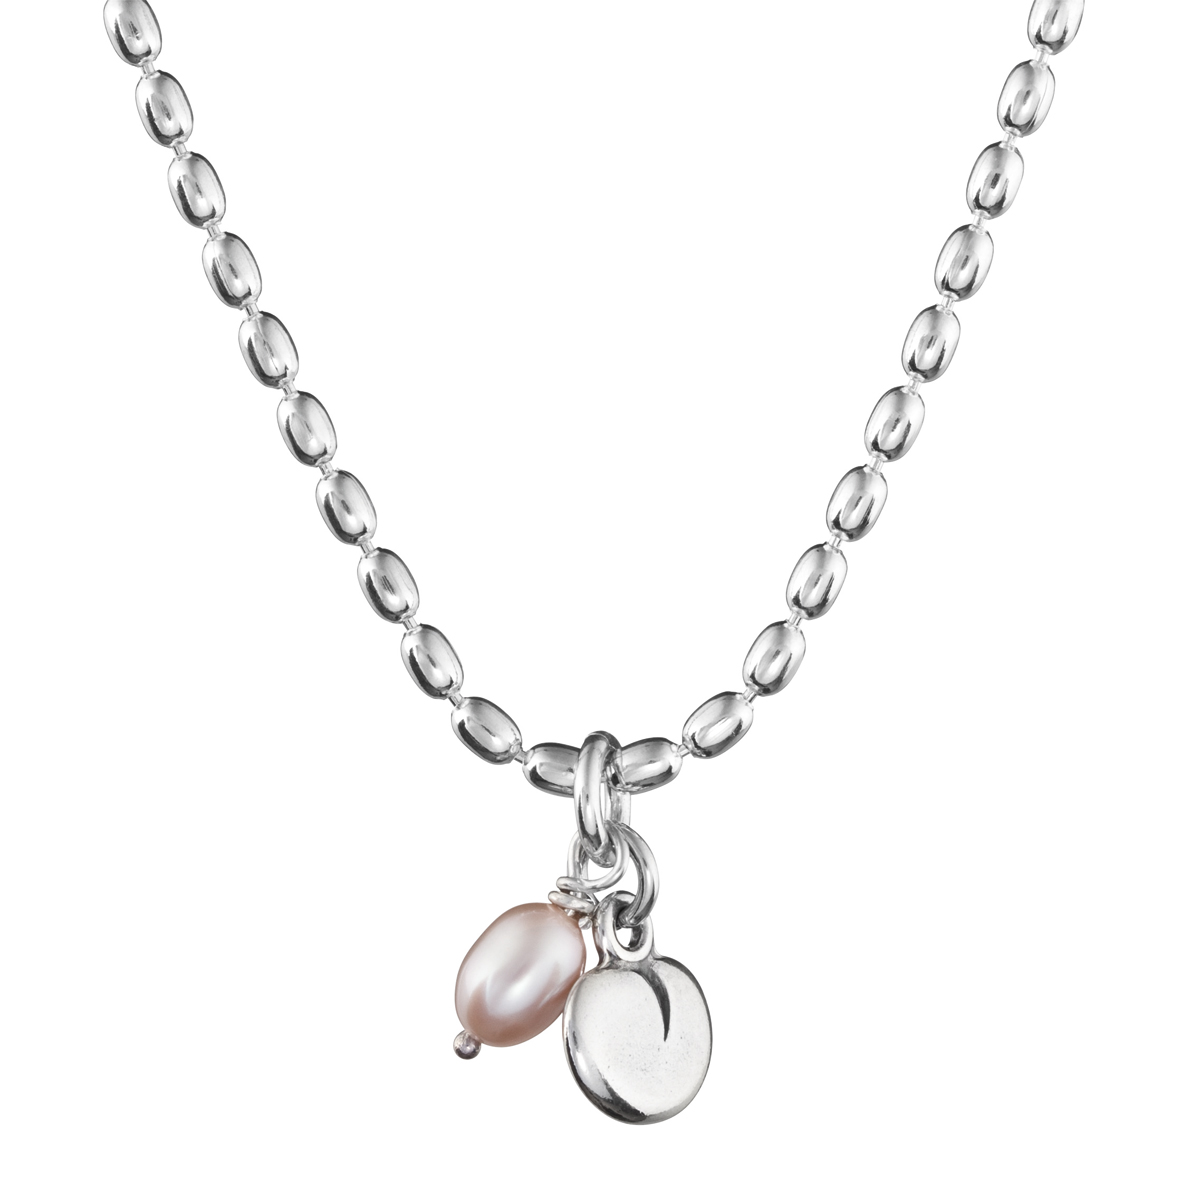 women pearls fullsizerender floating necklace sterling of with for silver products pendant shades three freshwater aaa dainty pink pearl chain simple